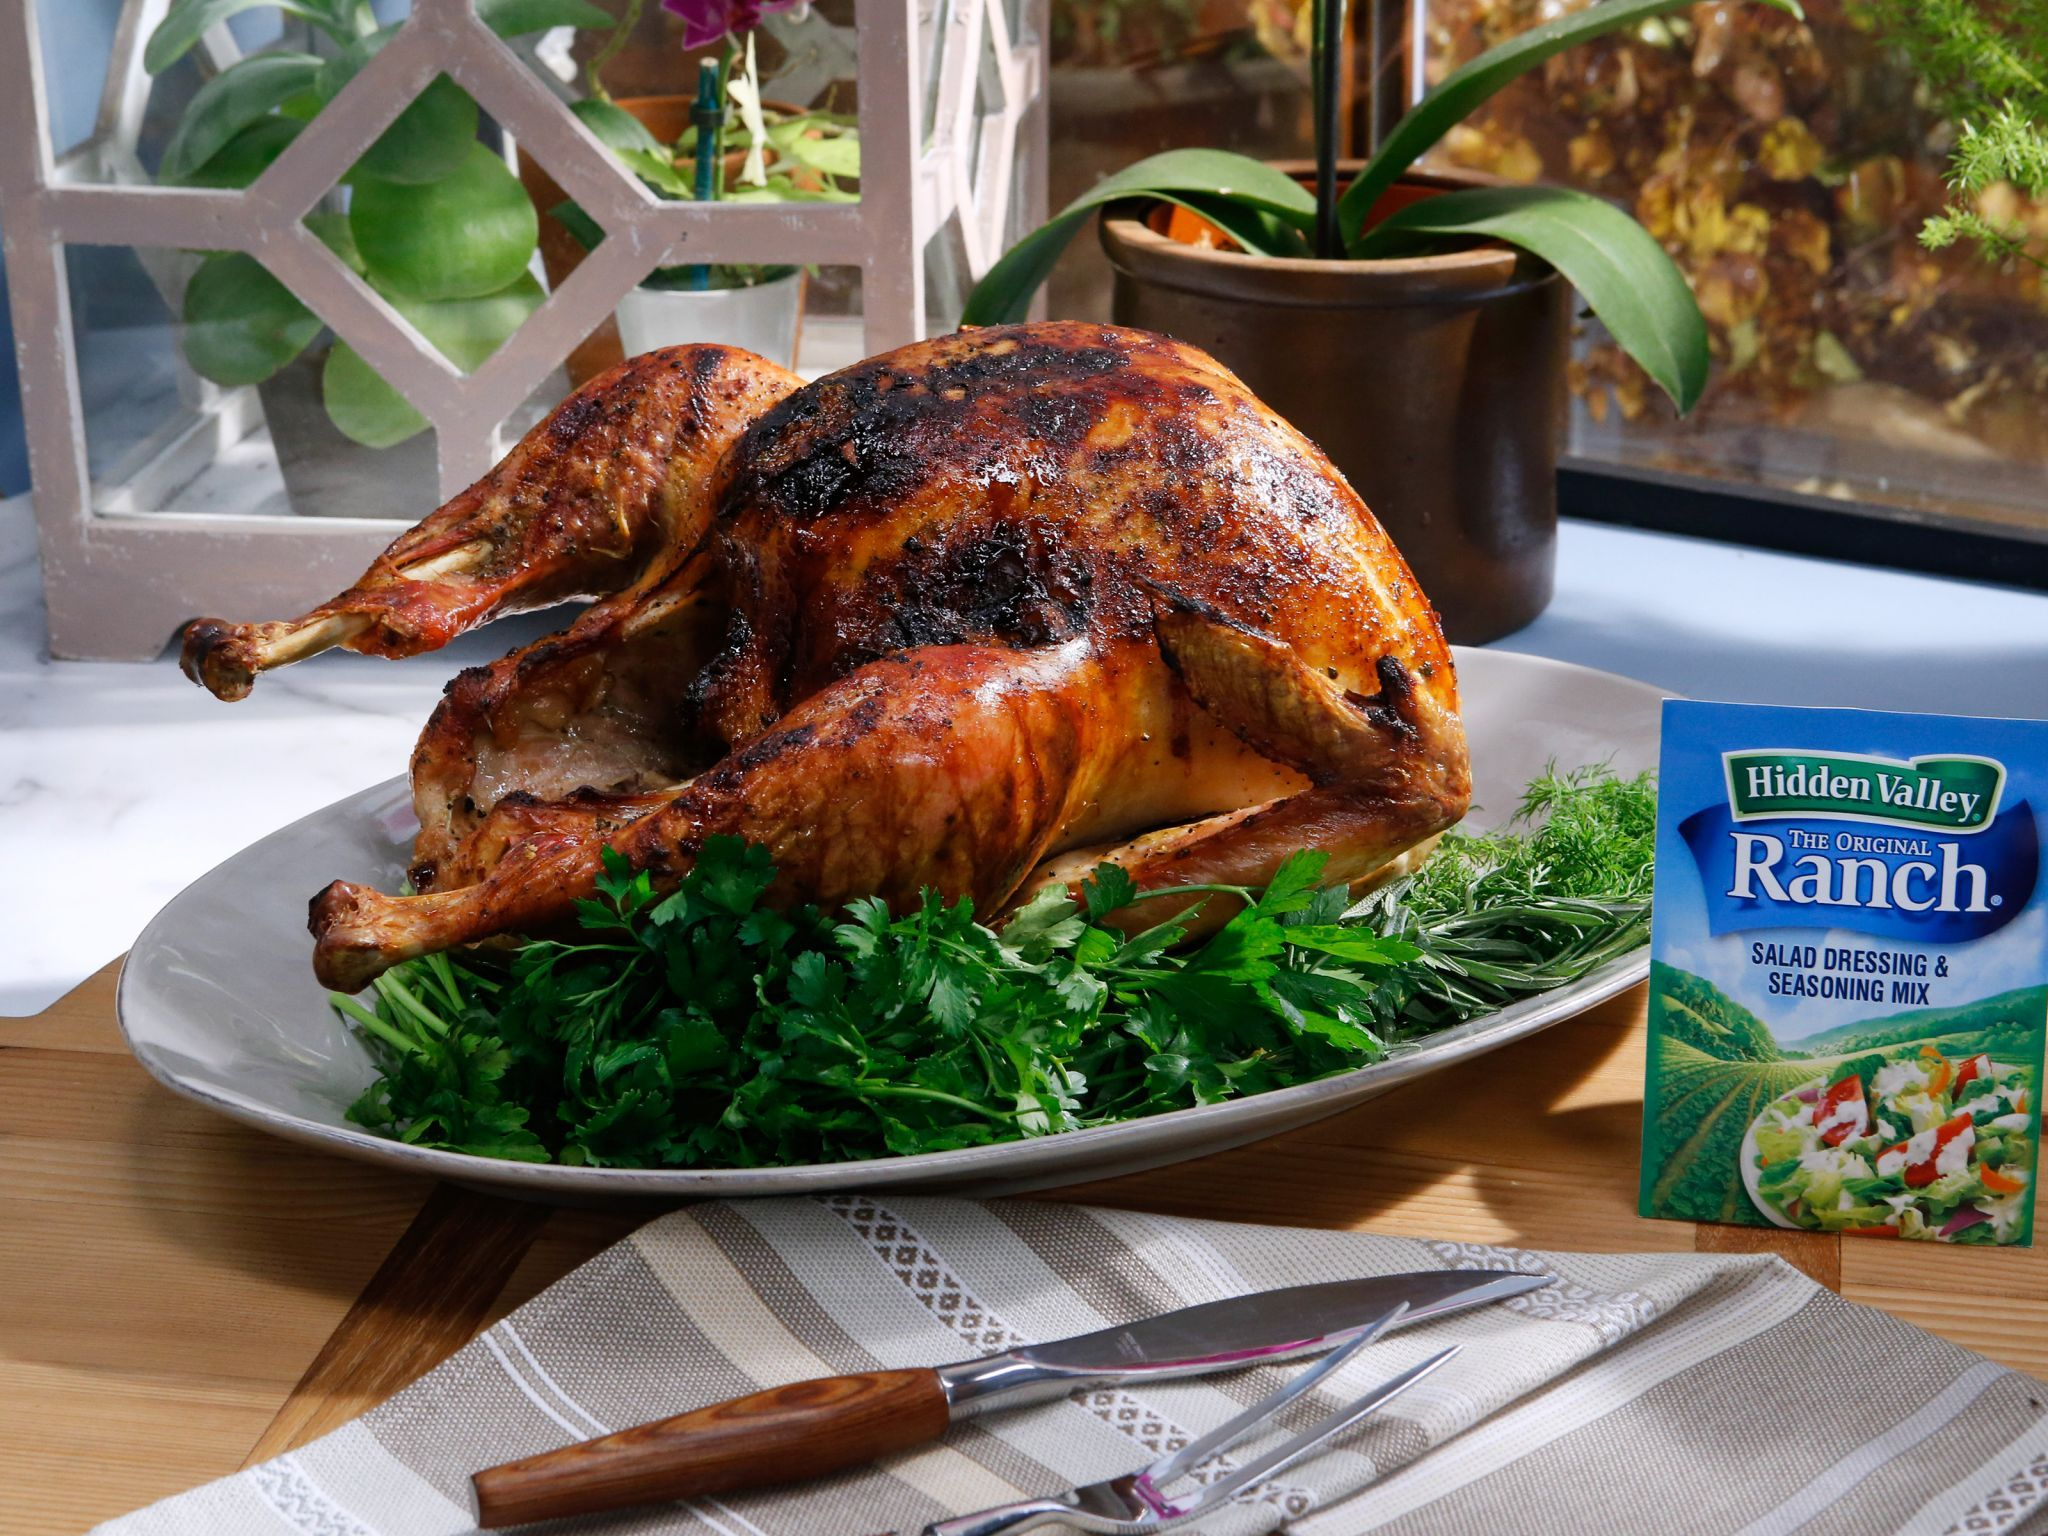 Ranch turkey recipe katie lee turkey recipes and ranch ranch turkey thanksgiving turkeythanksgiving recipeschristmas recipesfood network thanksgivingholiday mealschristmas forumfinder Choice Image